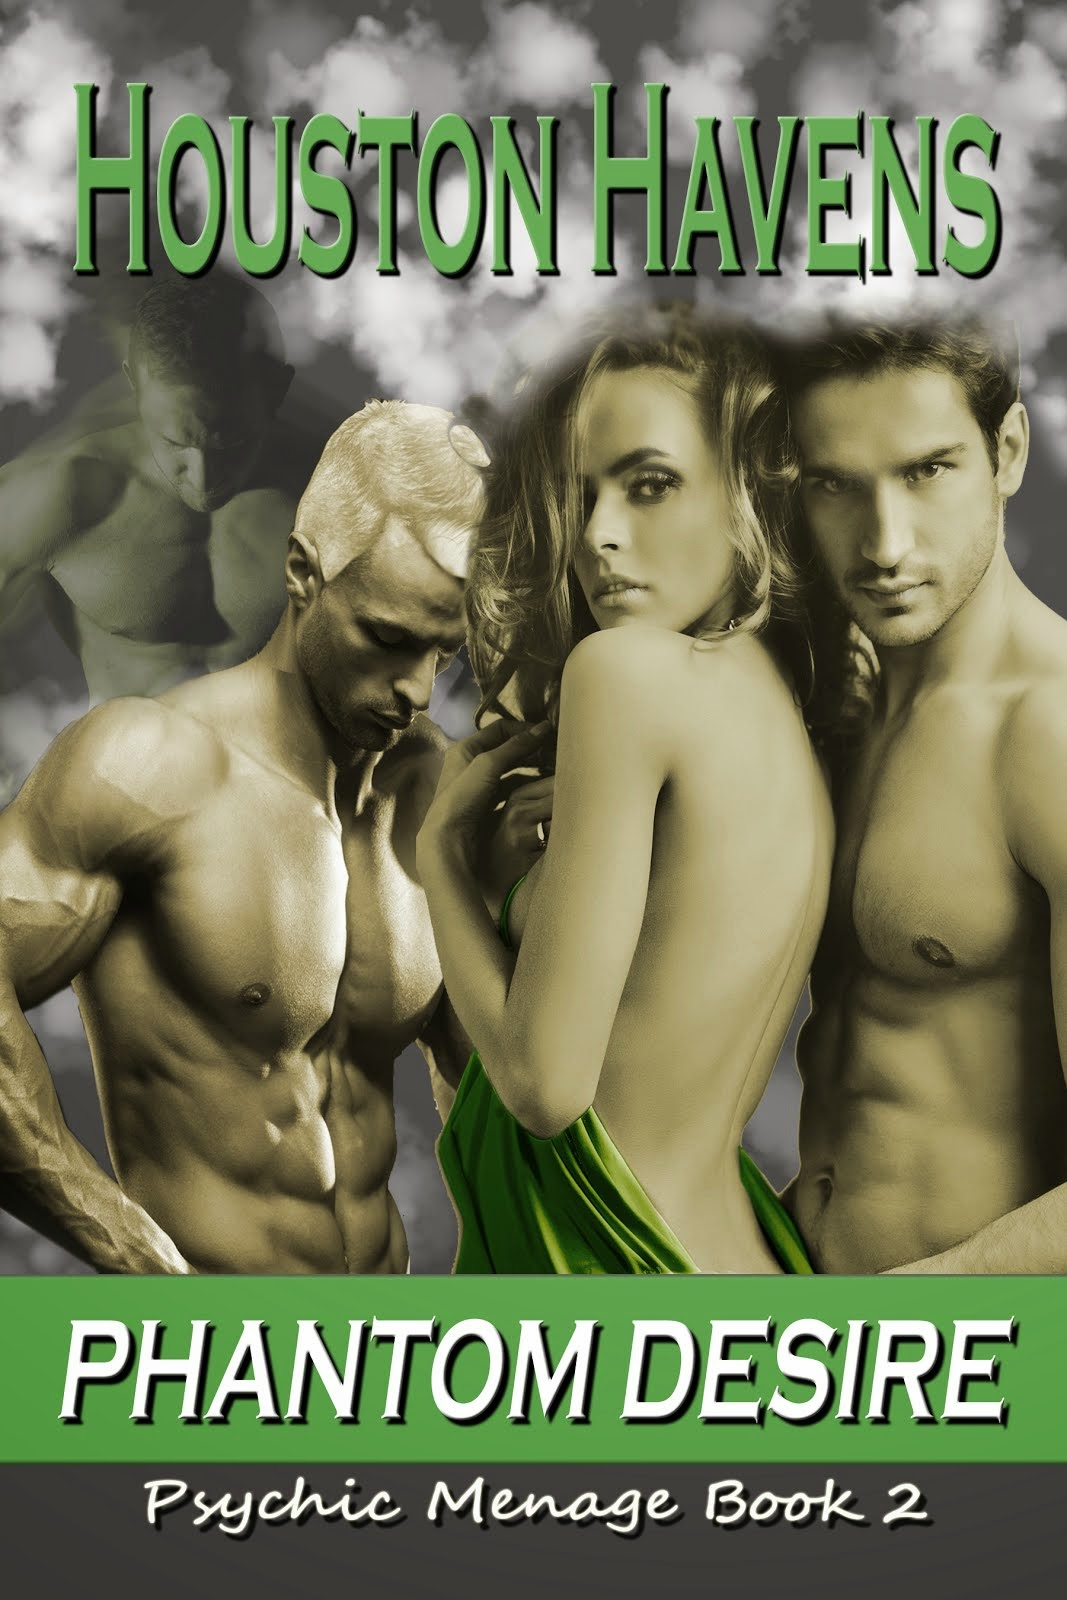 The Psychic Menage Series Continues